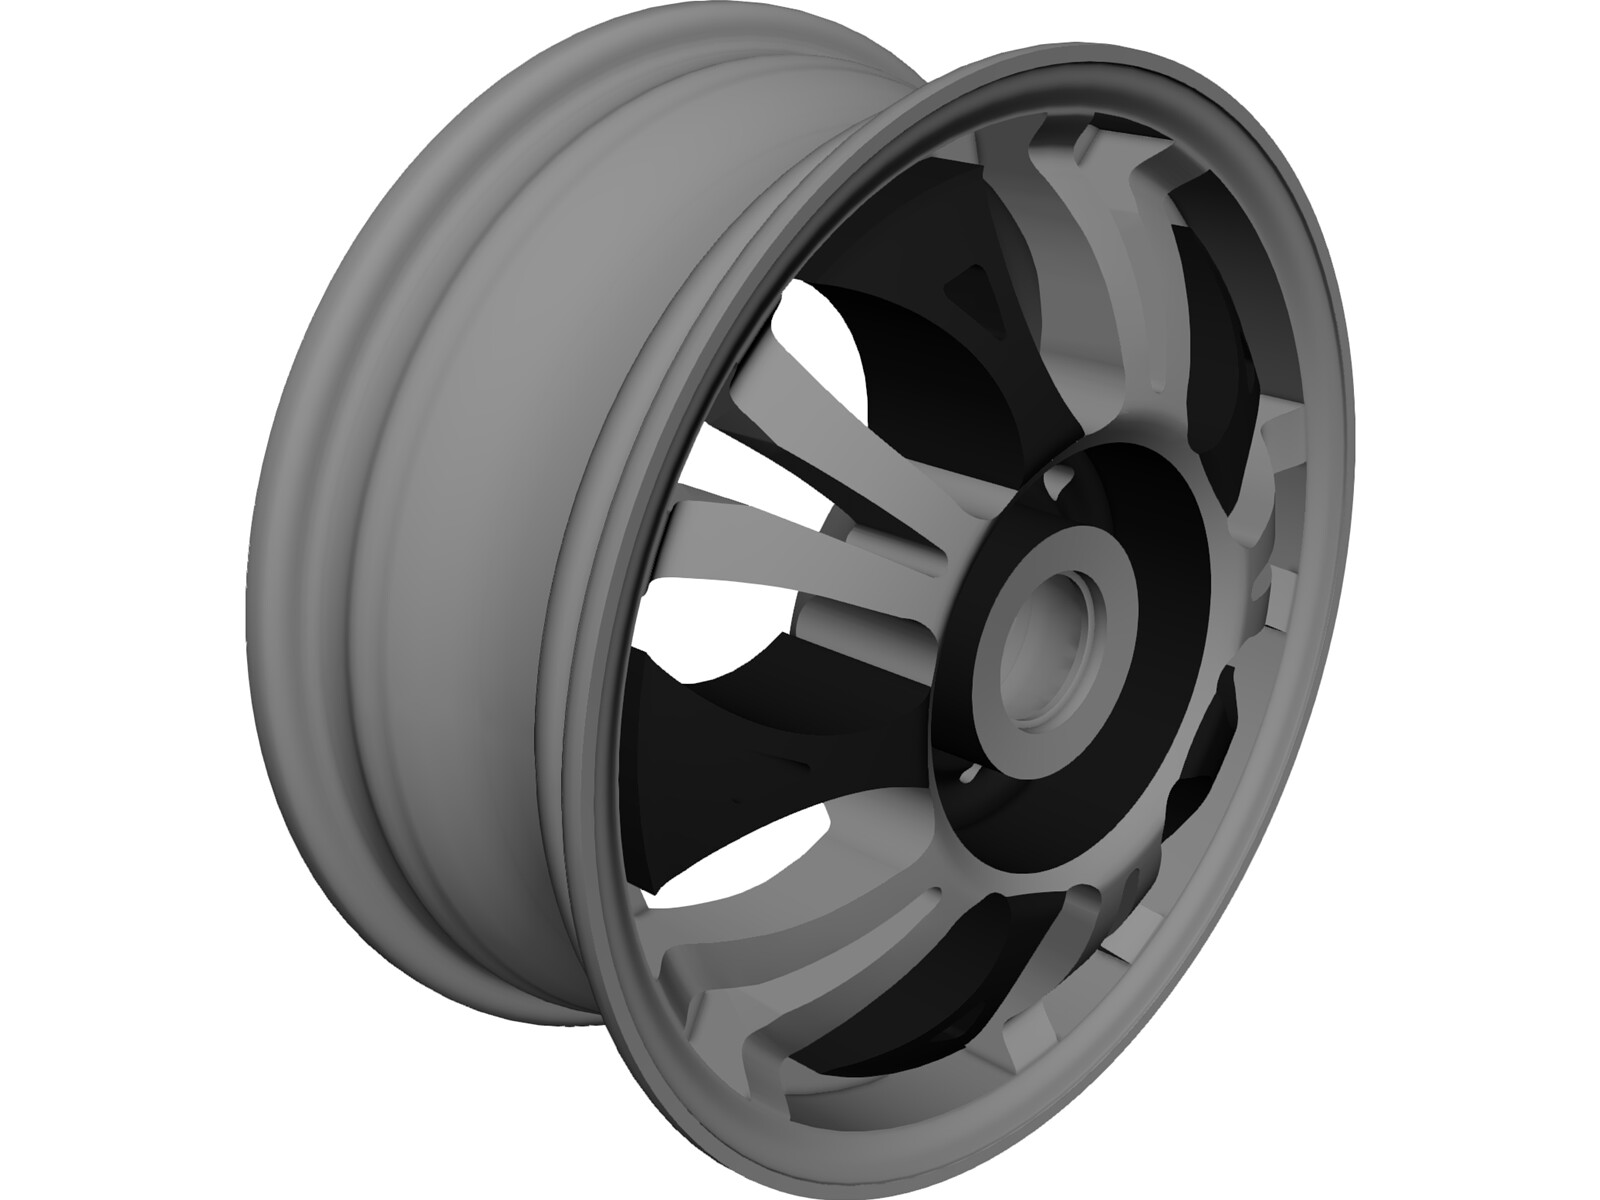 Ferraro Wheel F56 3D CAD Model